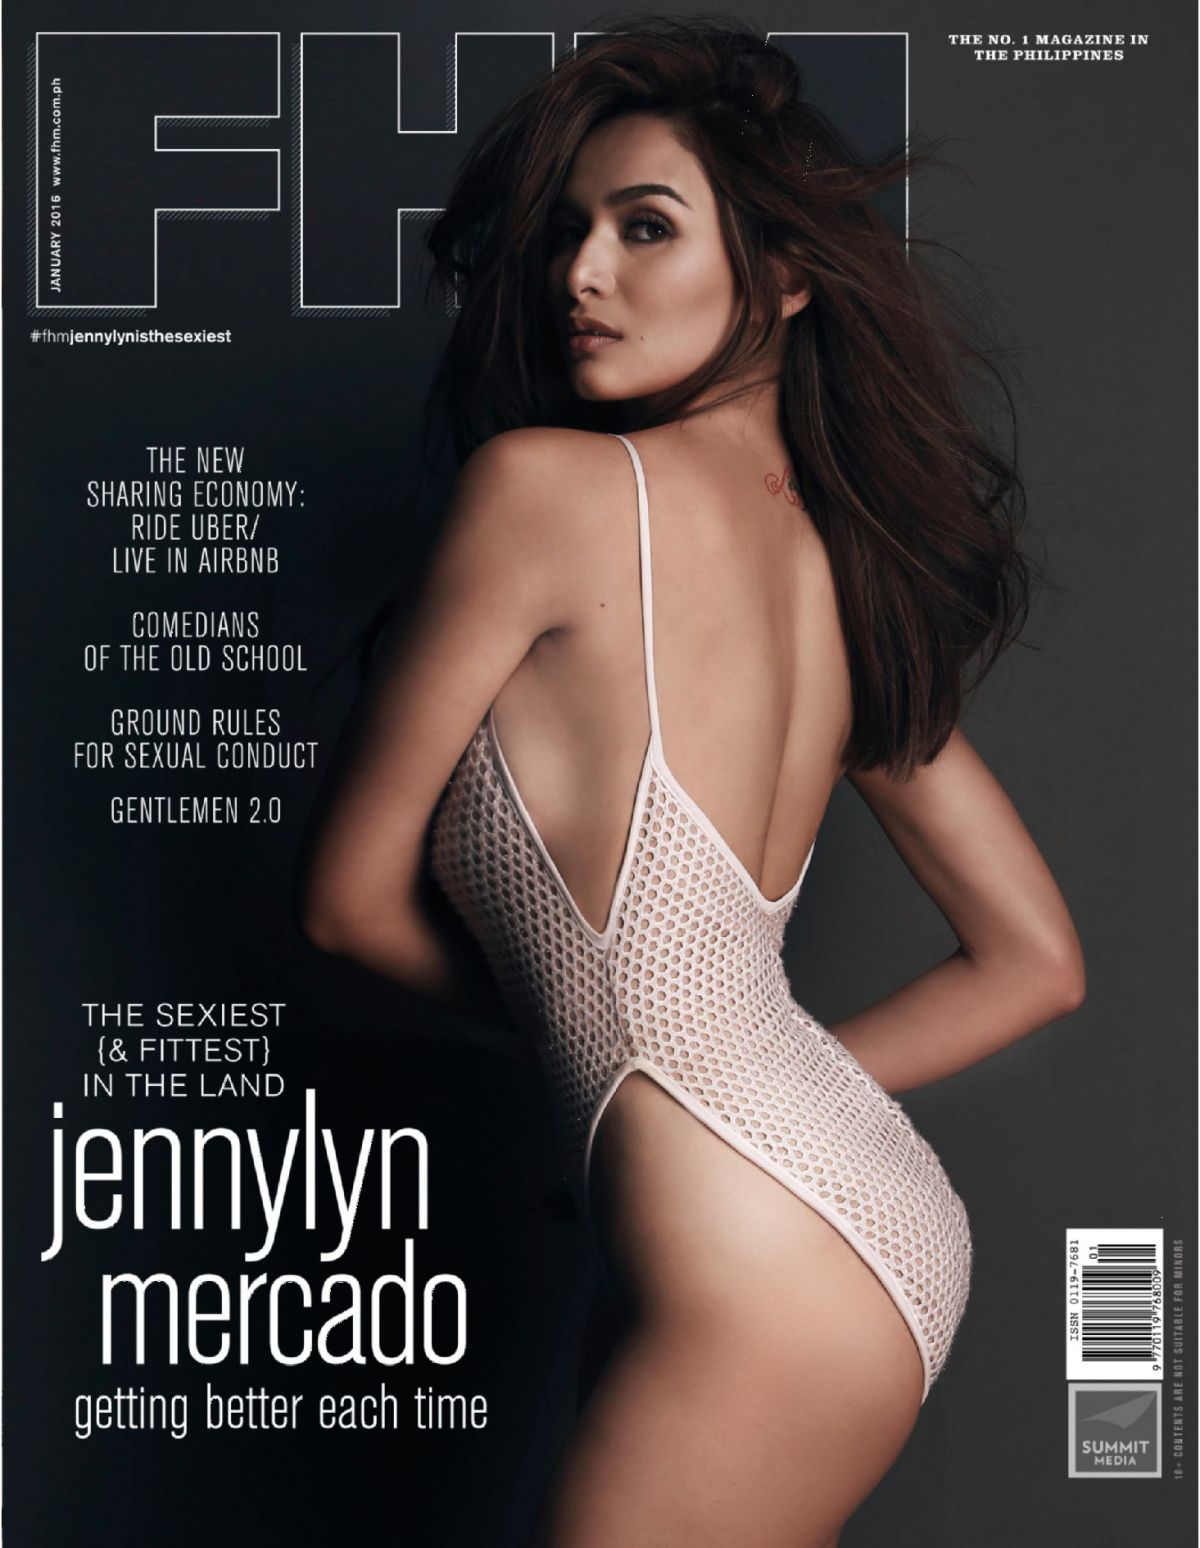 JENNYLYN MERCADO in FHM Magazine, Philippines January 2016 Issue